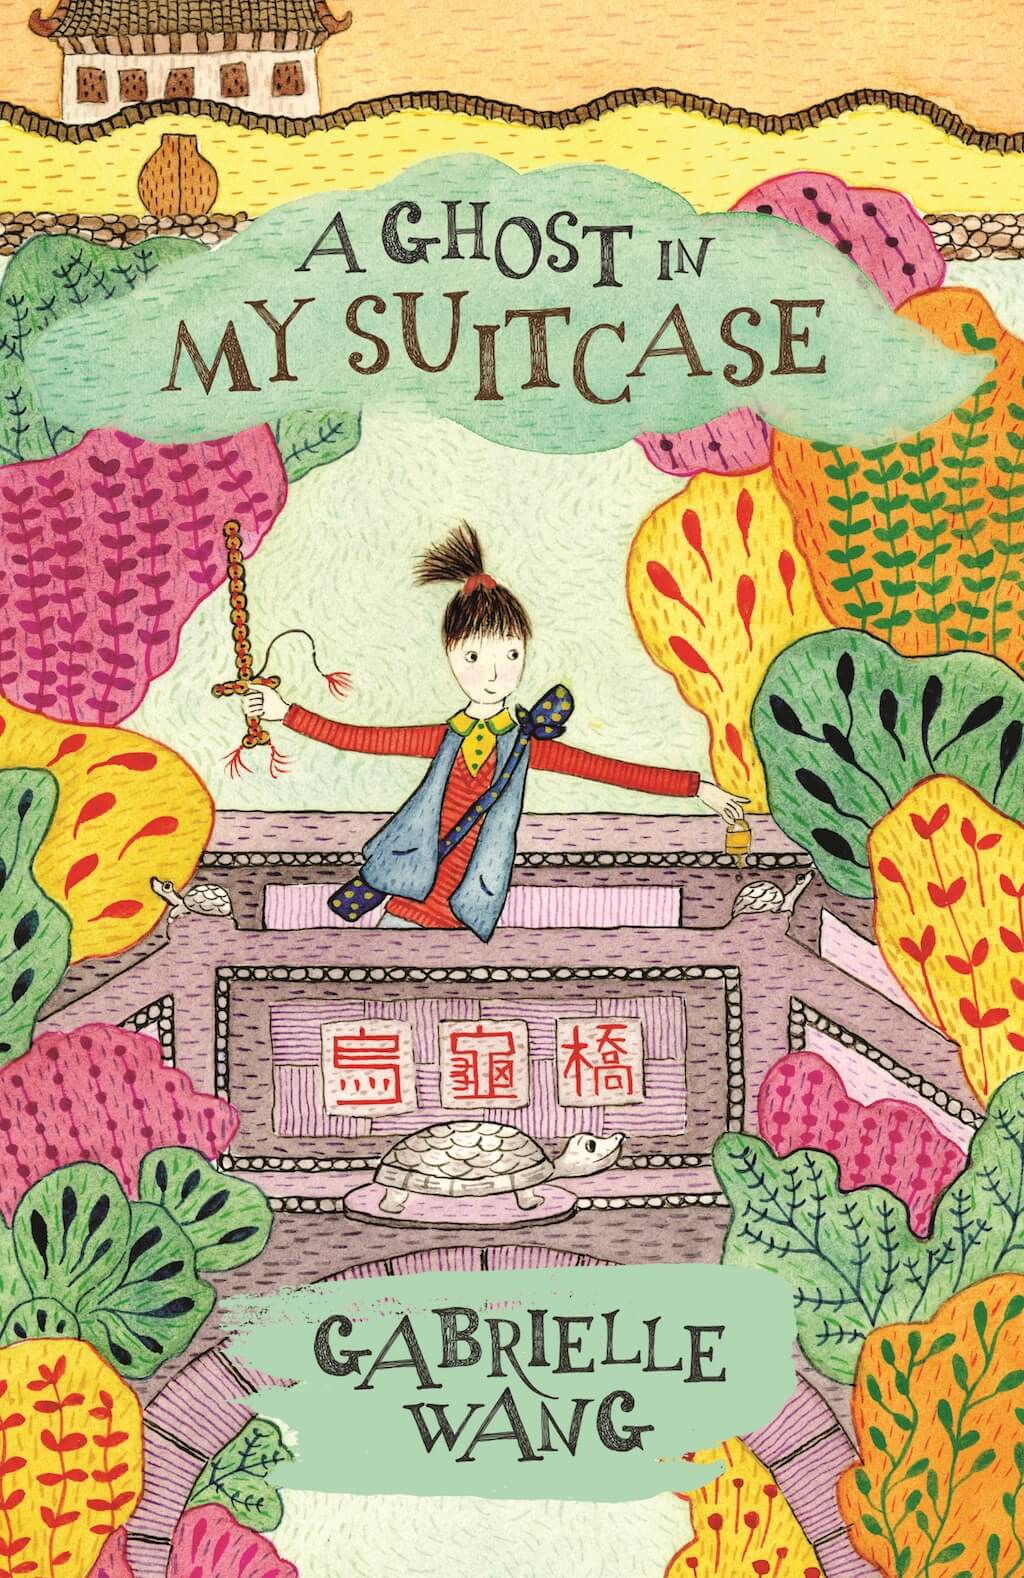 A Ghost in My Suitcase - Gabrielle Wang